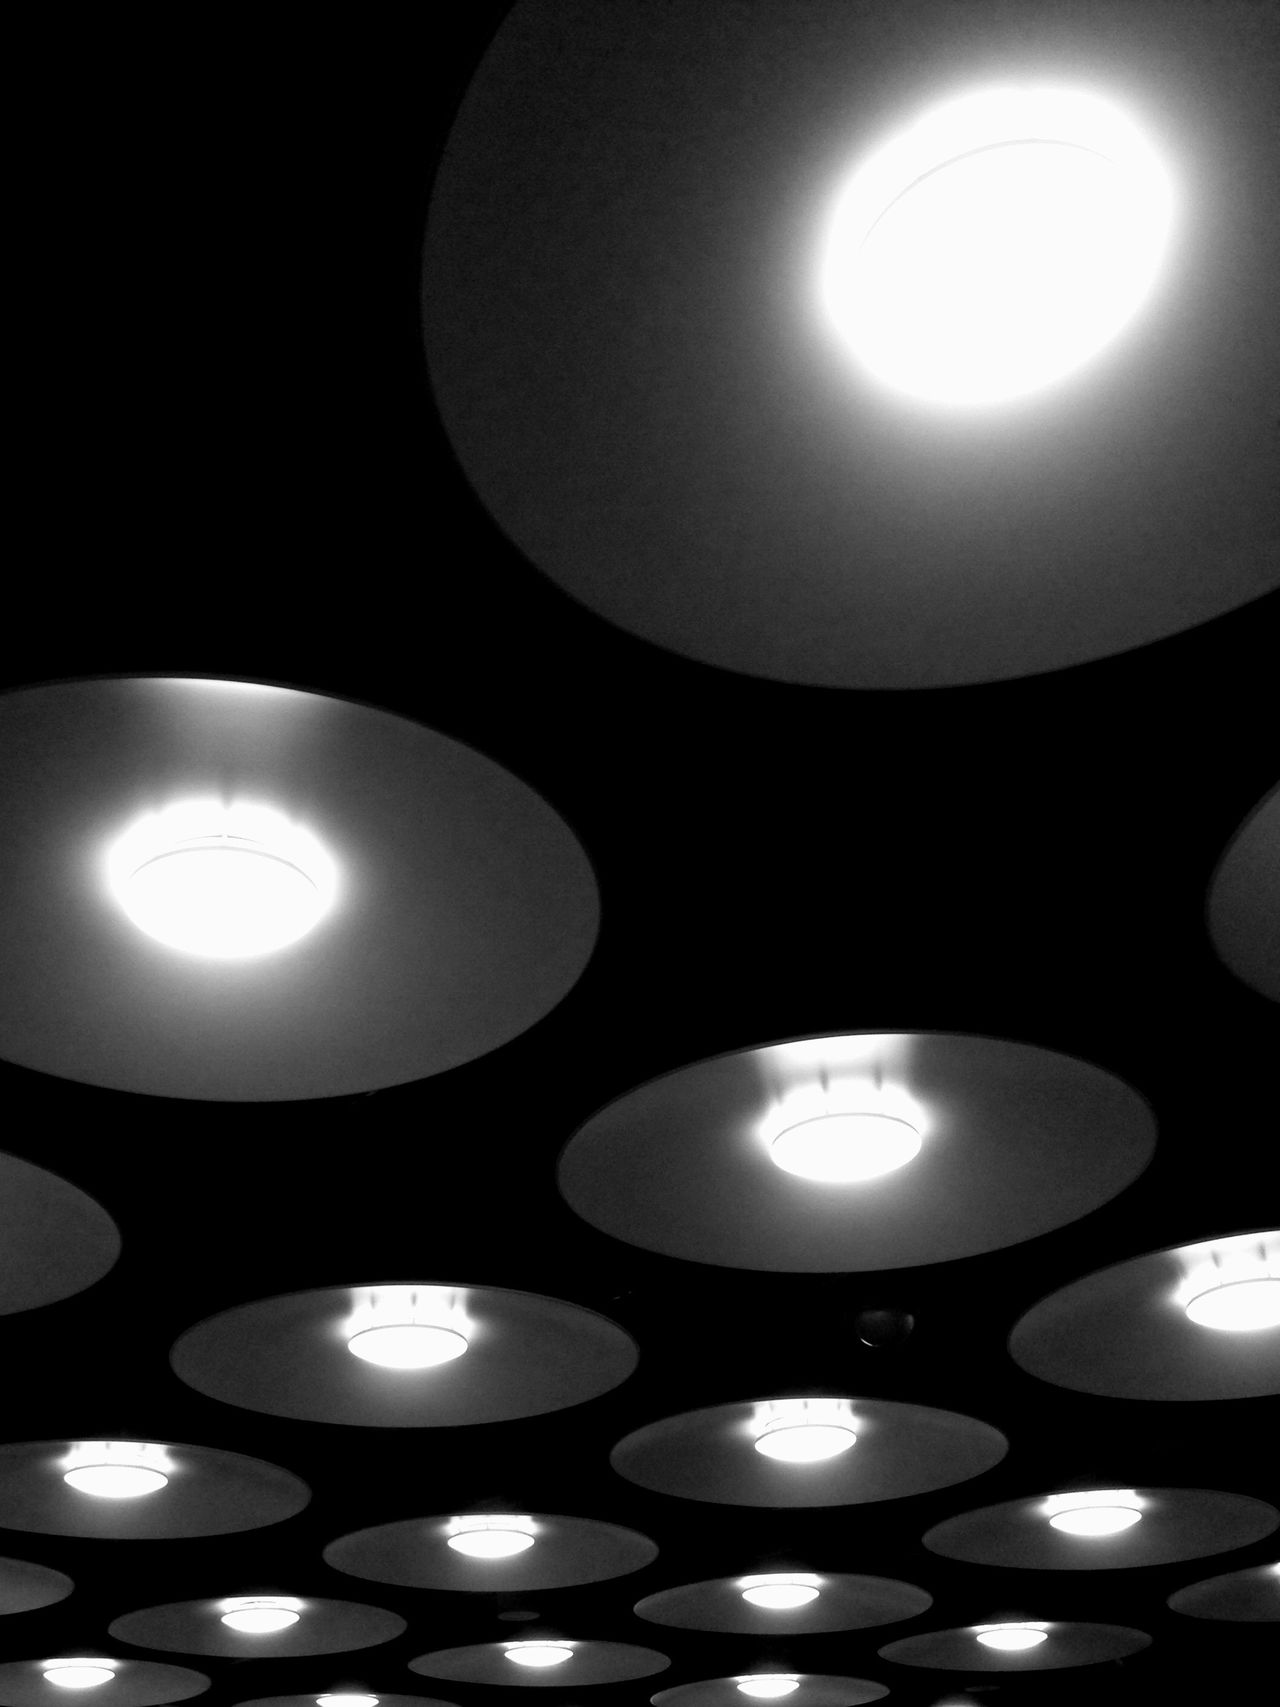 Lighting Equipment Illuminated Circle Lit Night No People Indoors  Light Abstract Pattern Black And White Black & White Light And Shadow IPhoneography Interior Design Close-up Circular